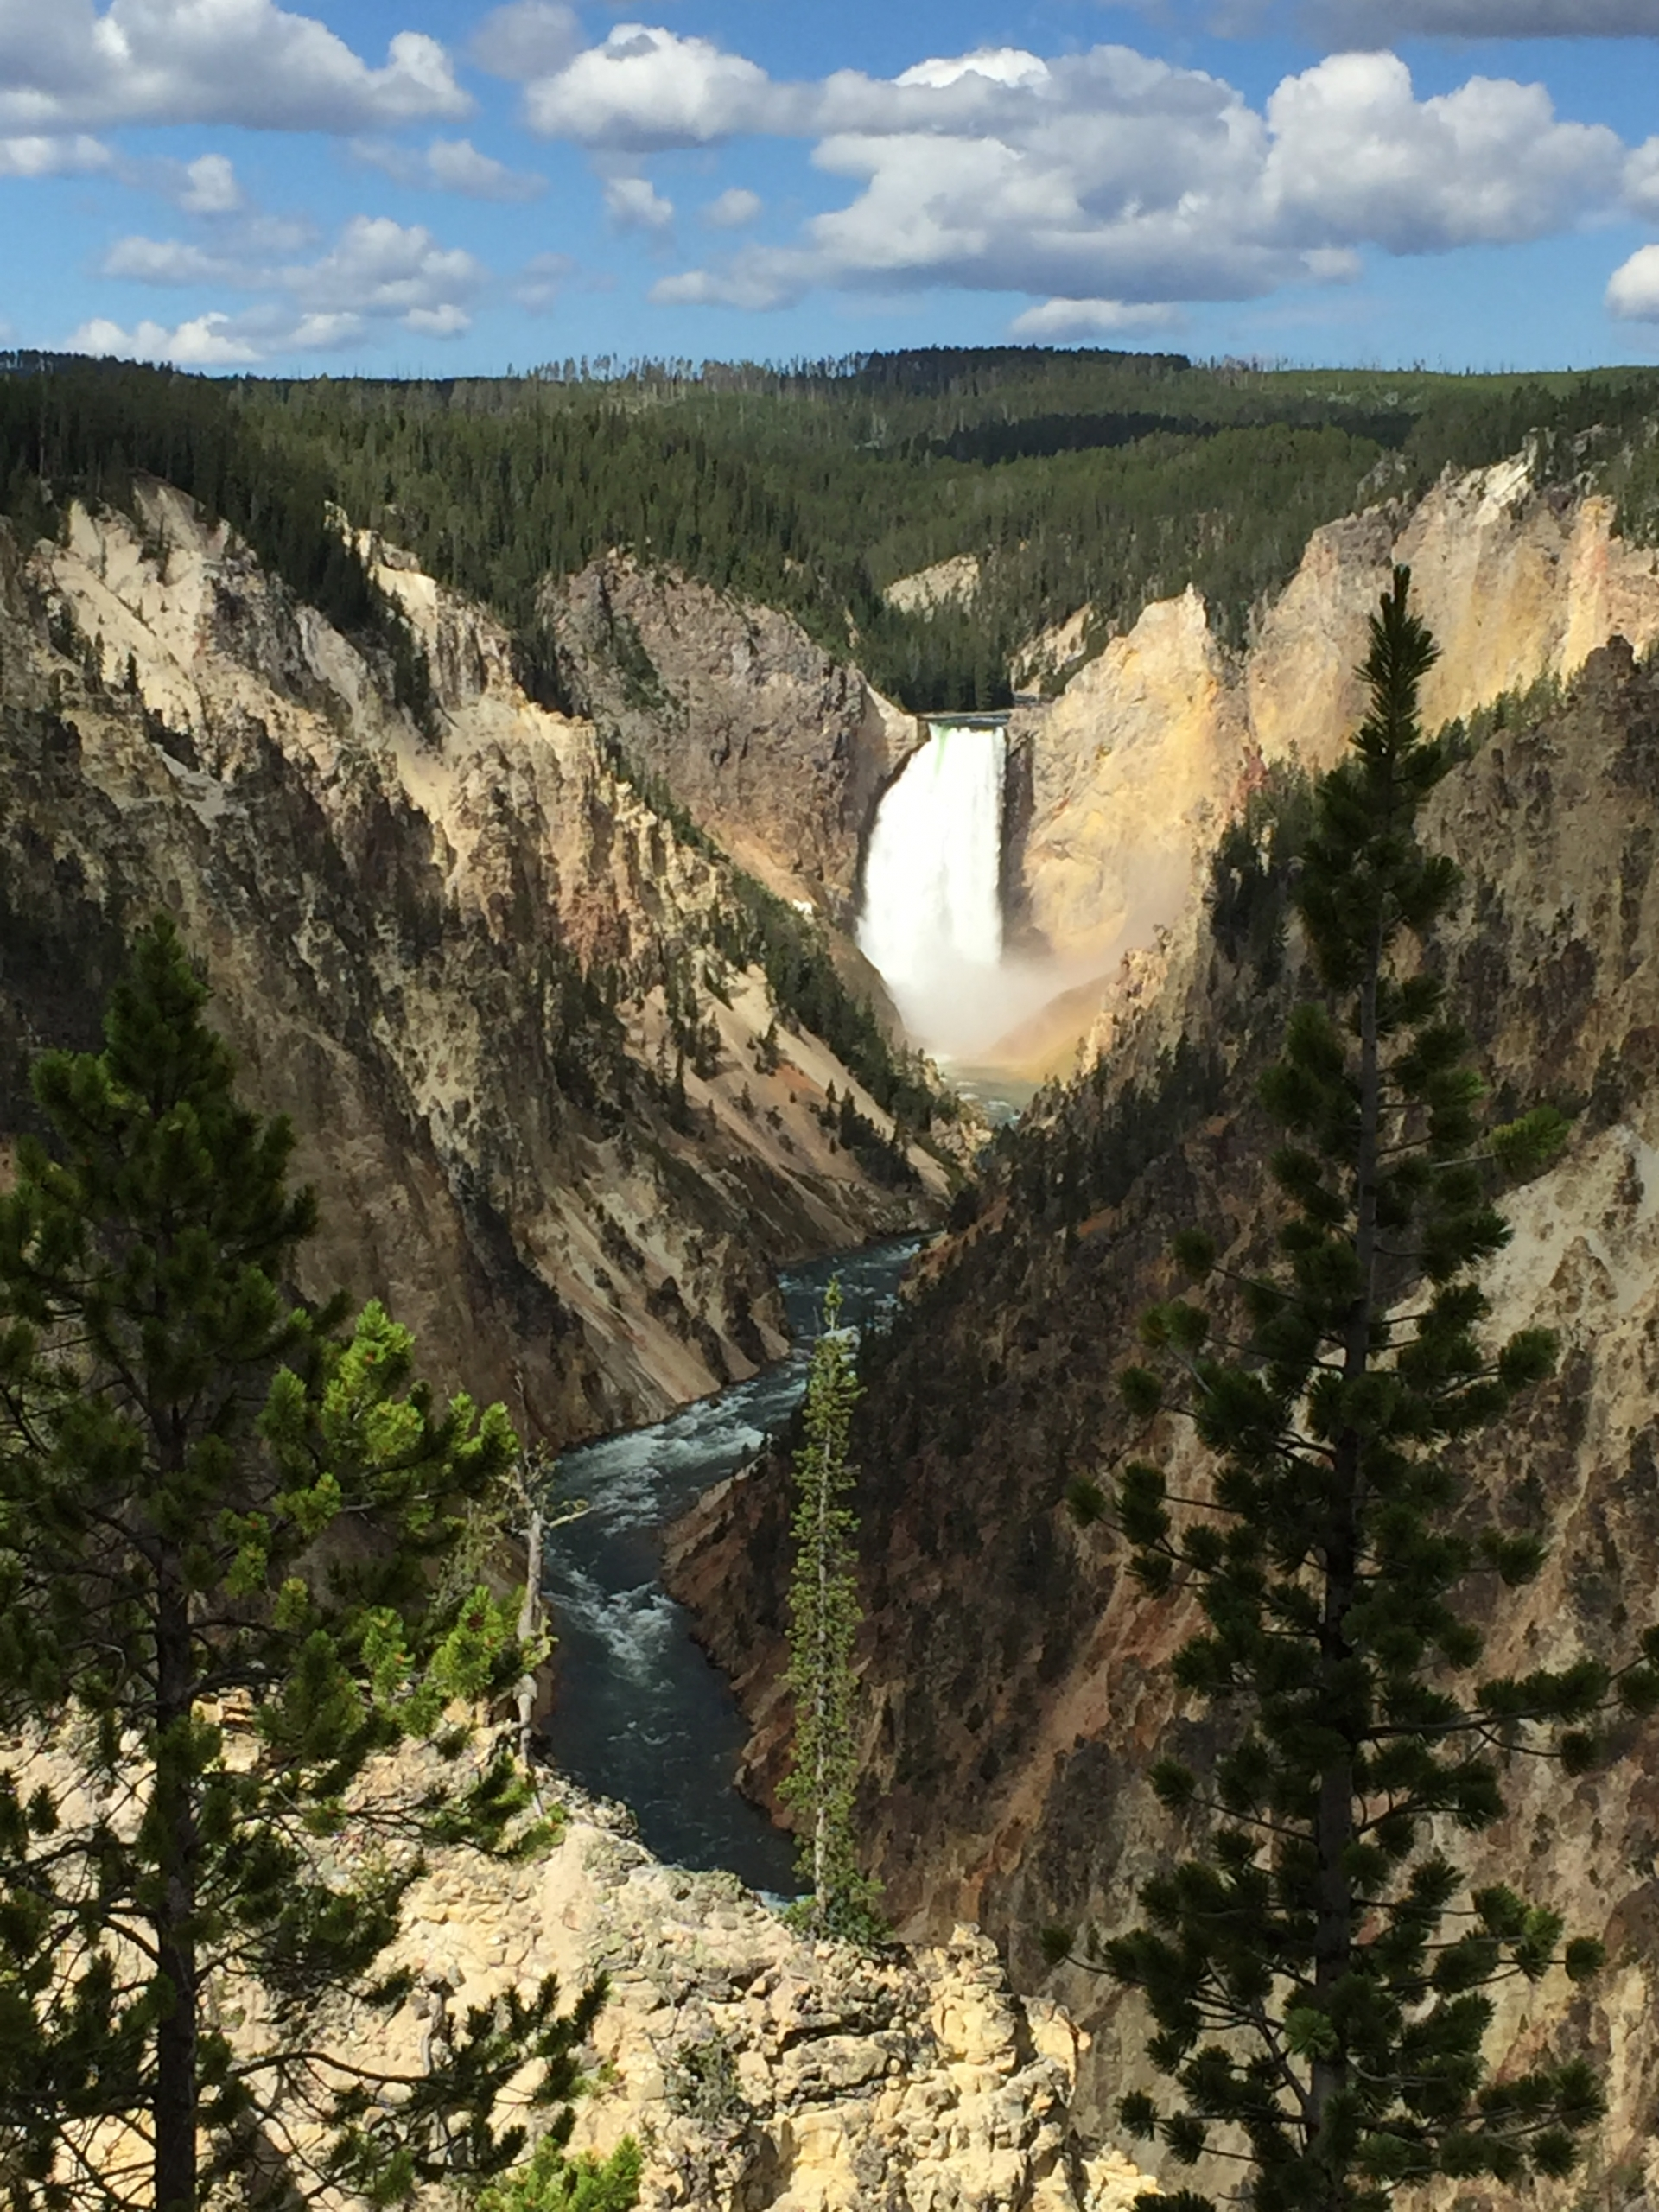 View of Lower Falls of the Grand Canyon of the Yellowstone